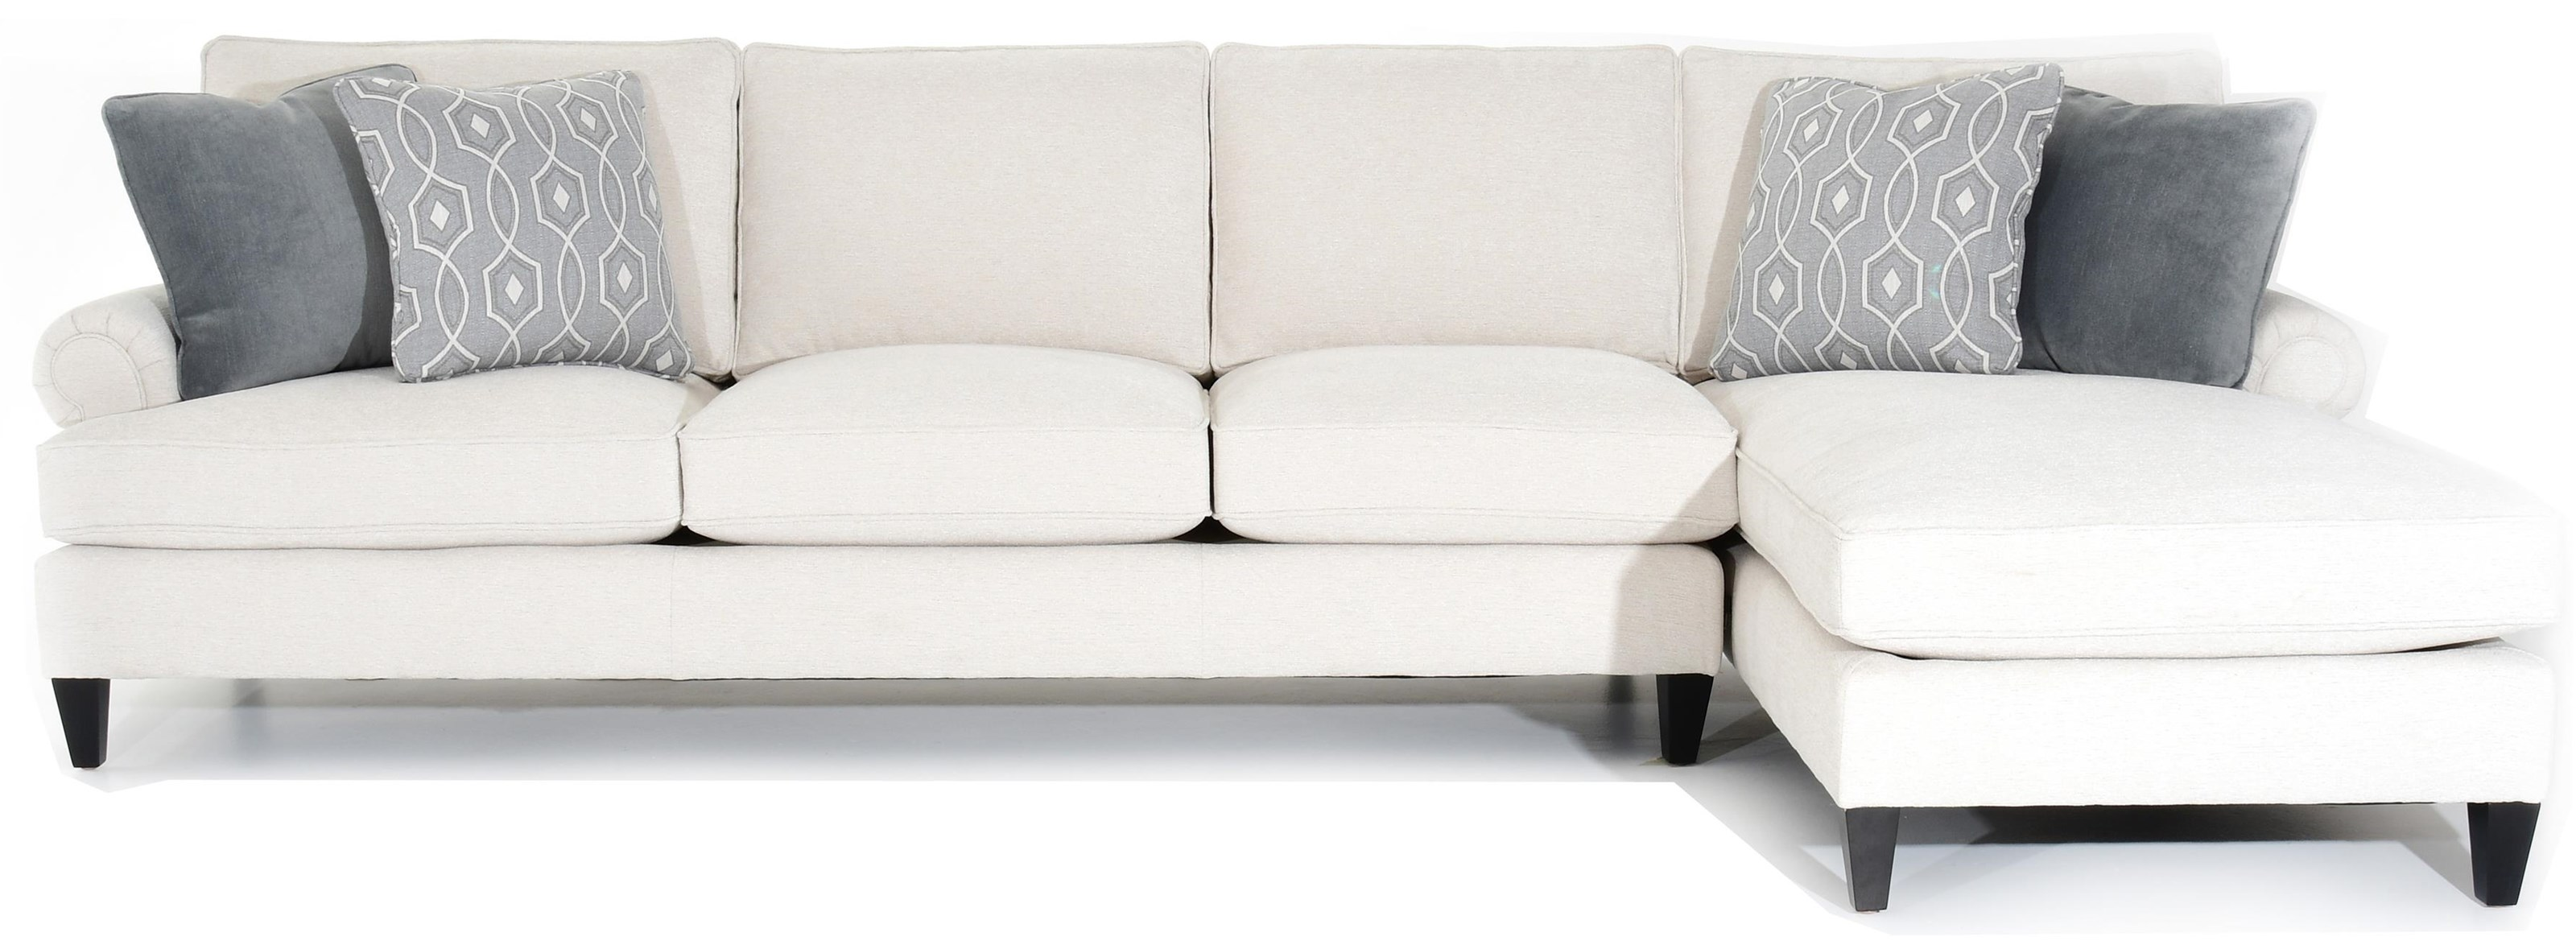 Customizable Sofa with RAF Chaise